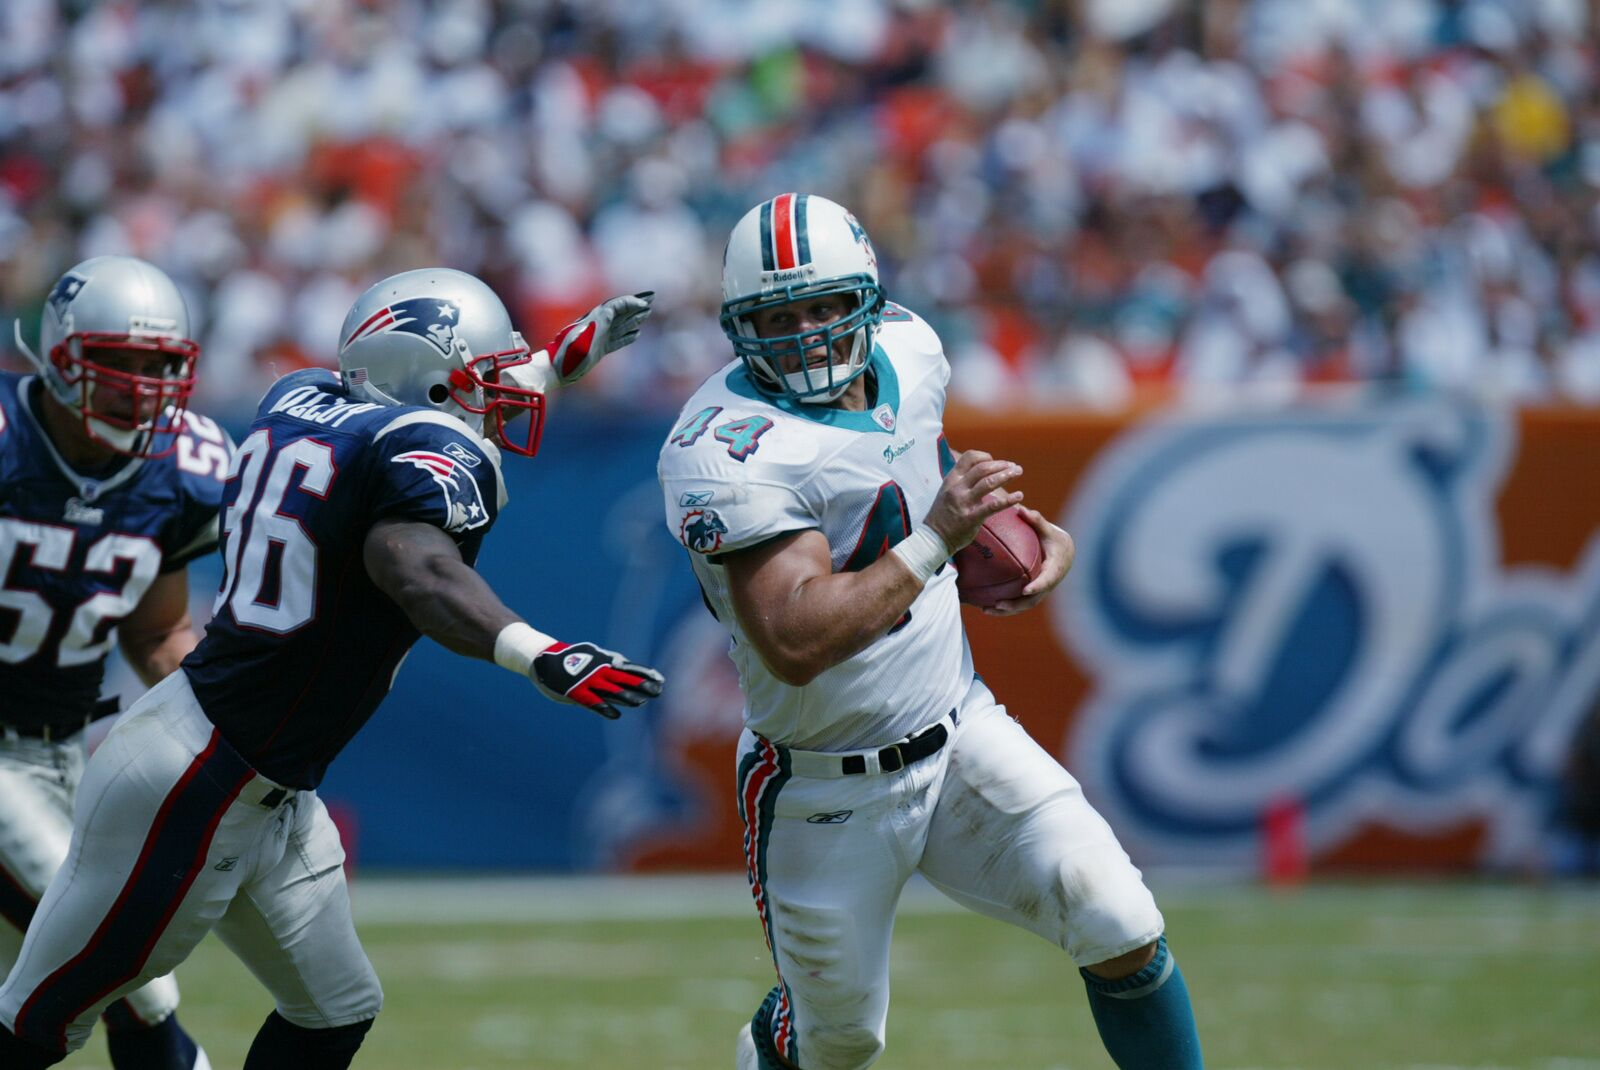 With Chandler Cox the new FB in Miami, who was the best ever?